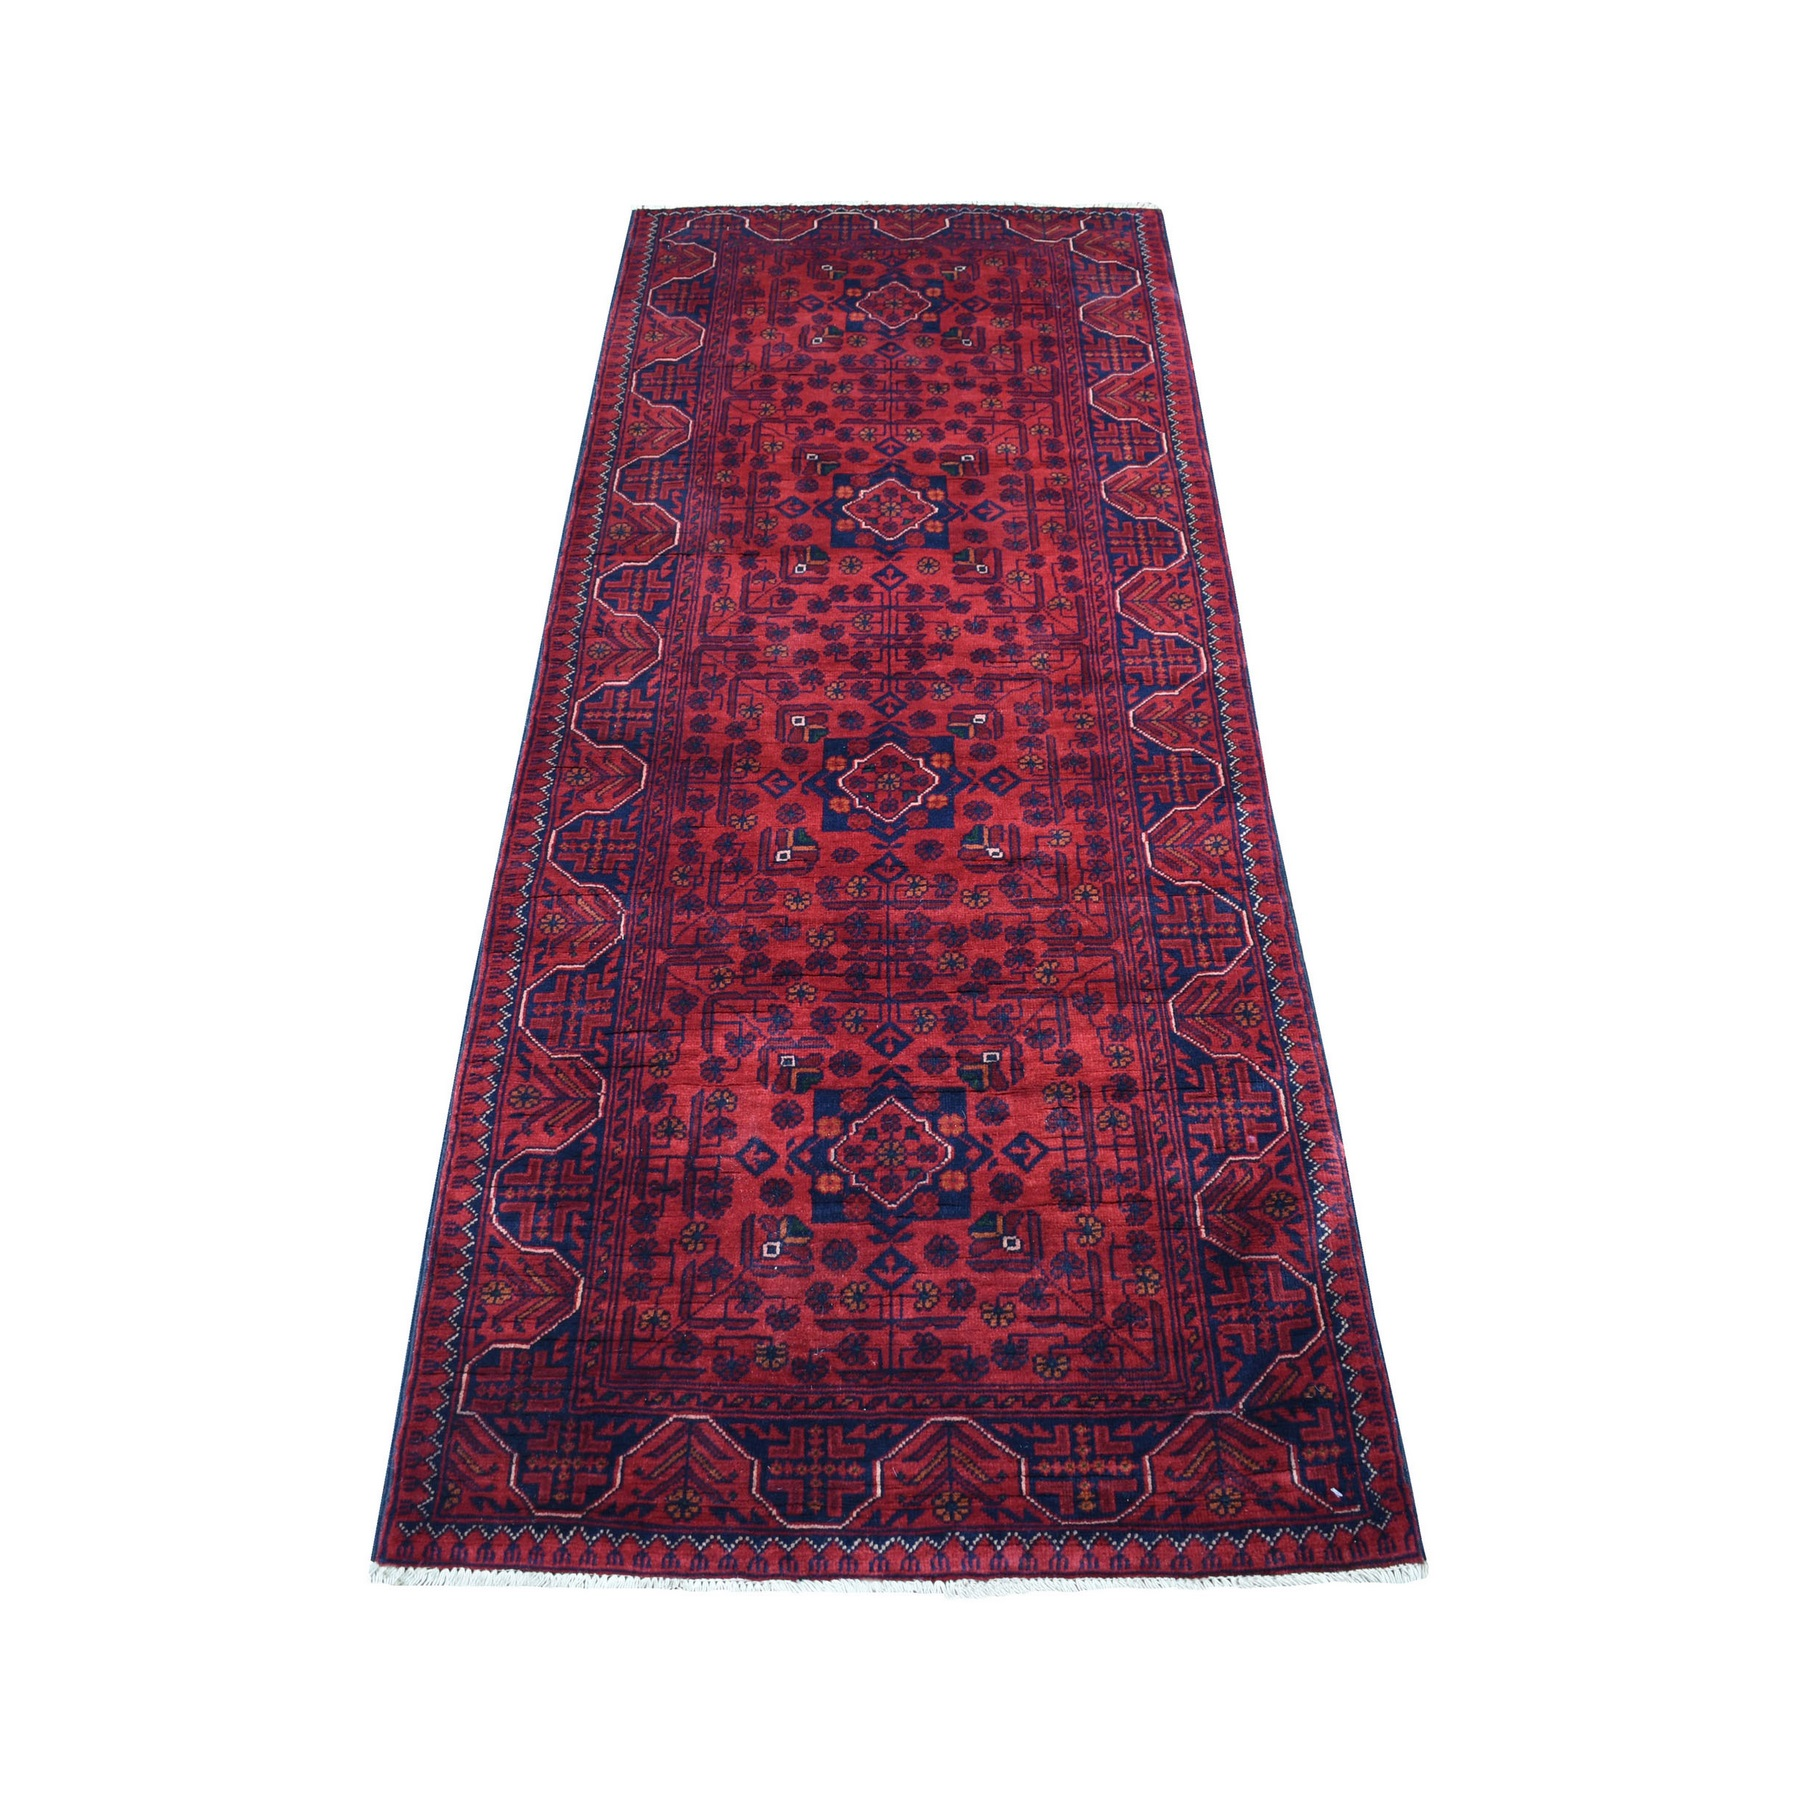 Nomadic And Village Collection Hand Knotted Red Rug No: 1136172